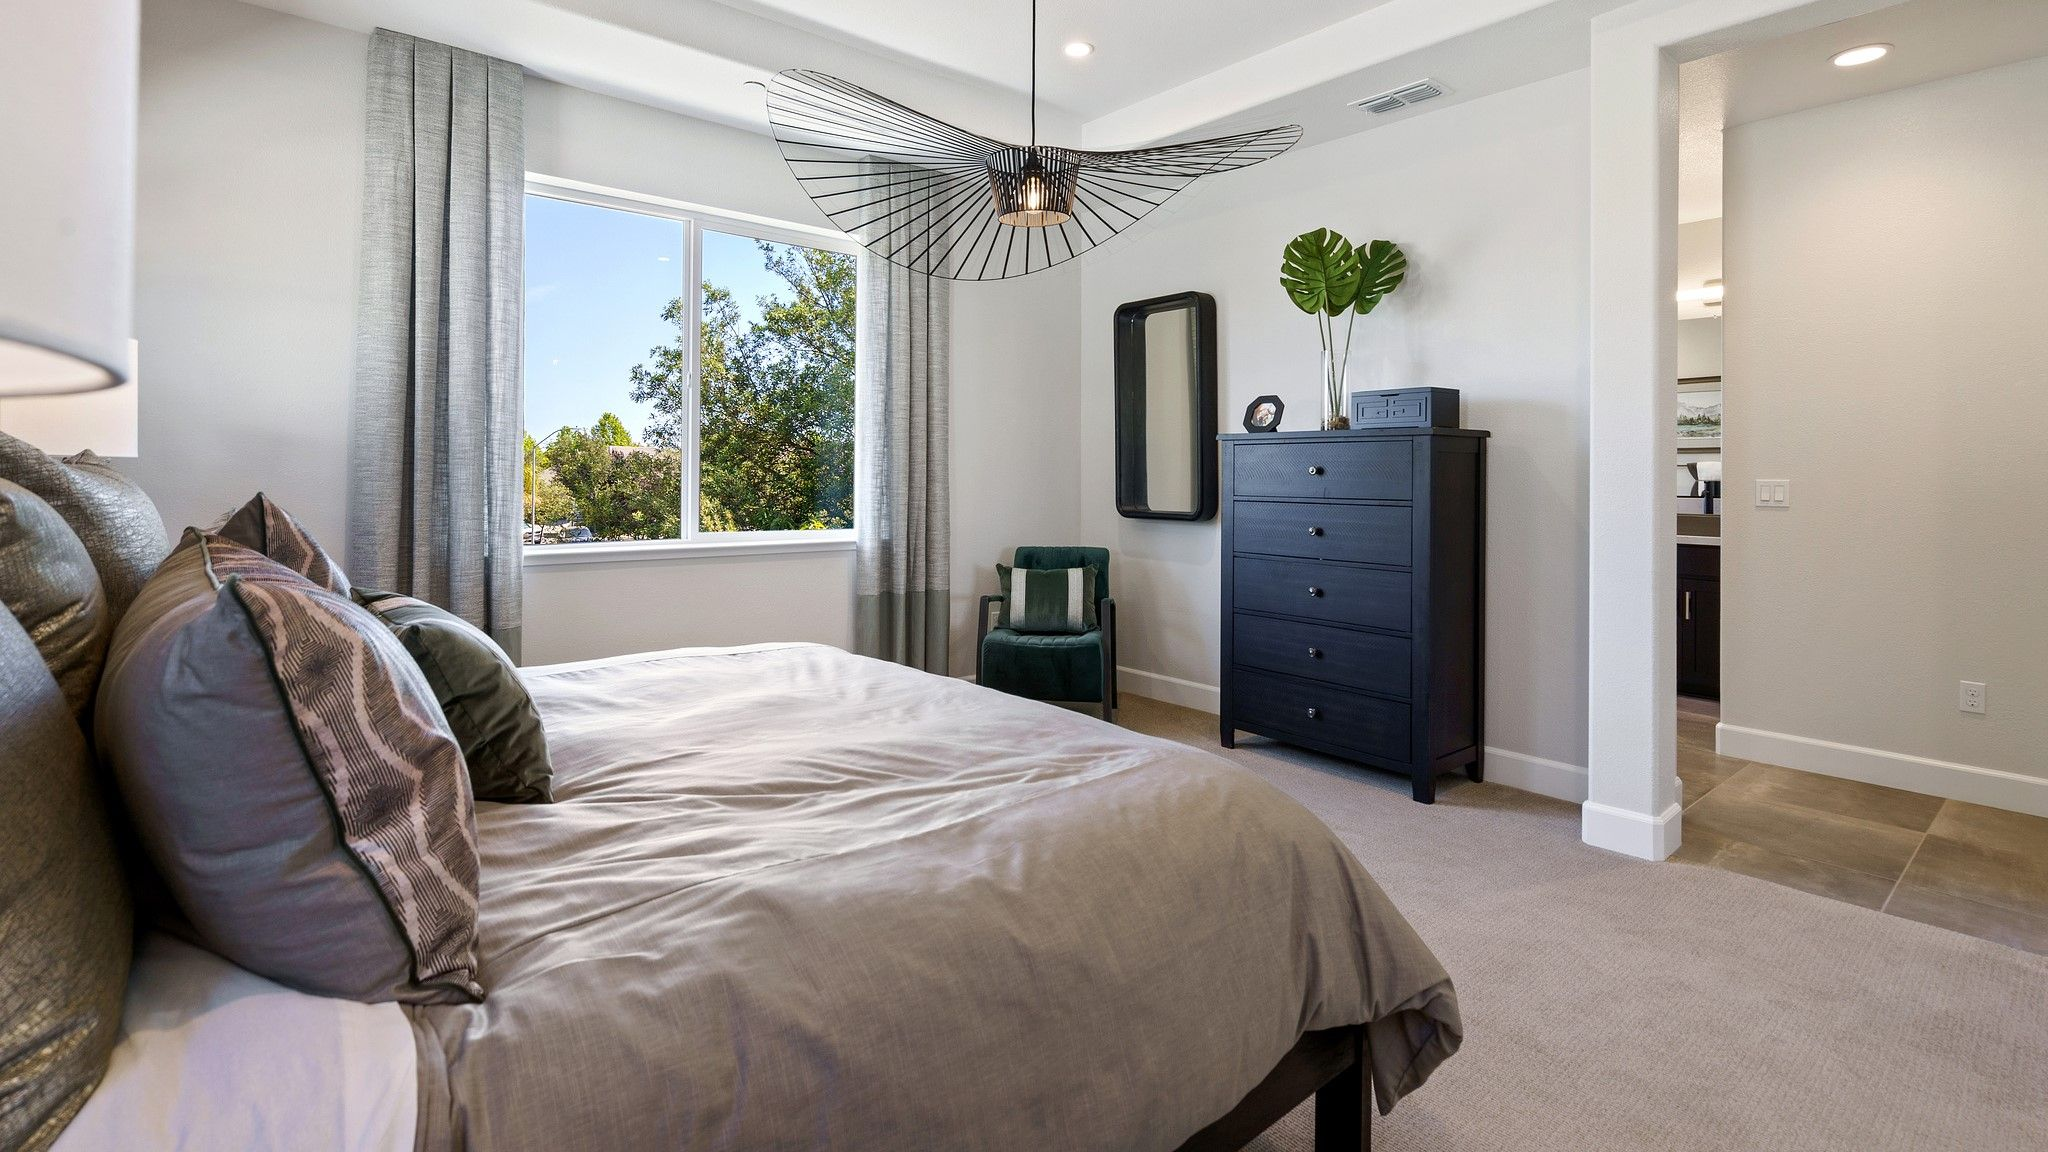 Bedroom featured in the Arroyo By Seeno Homes in Sacramento, CA